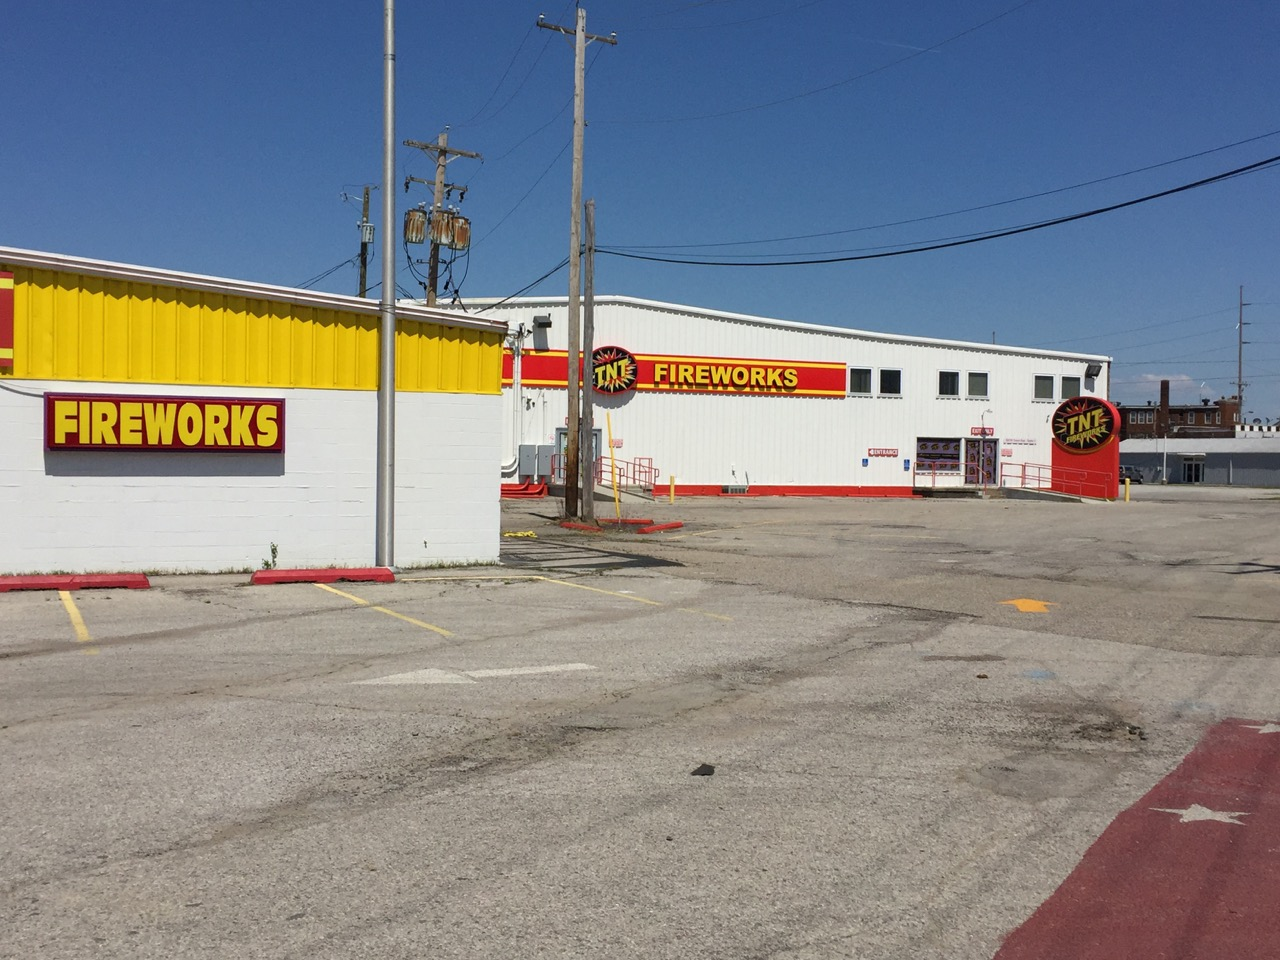 No fireworks in Indiana for me. The megastore is closed.